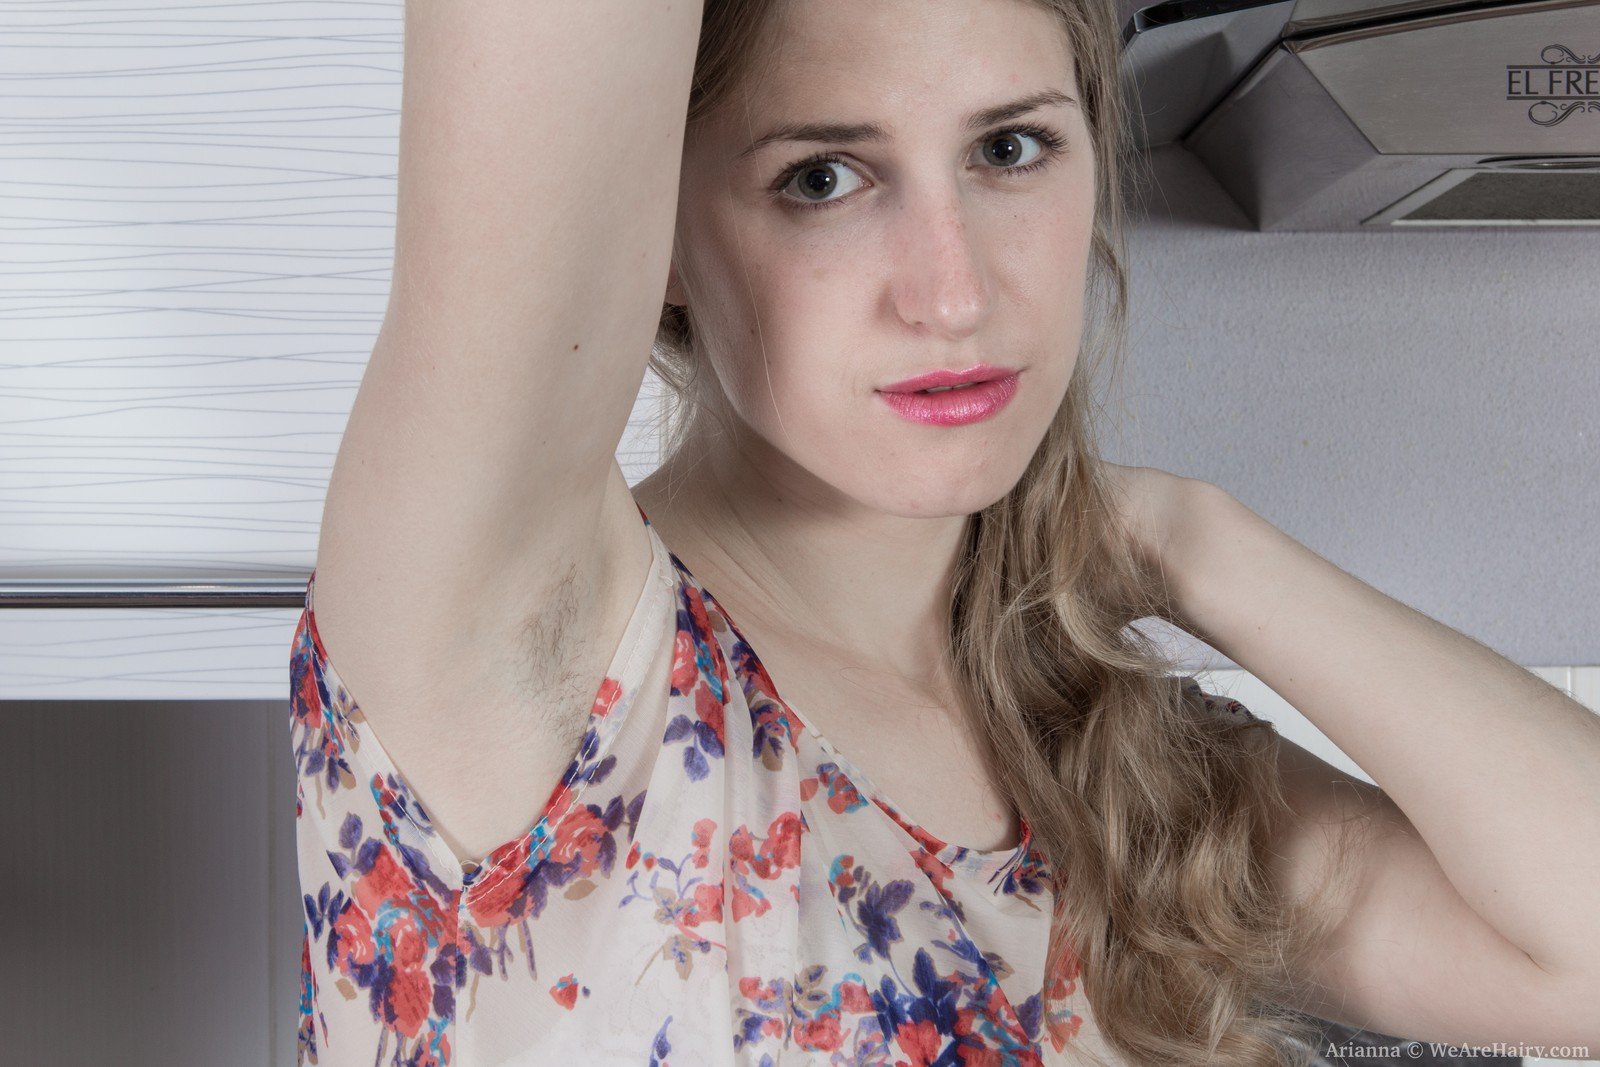 Chubby yuoung girls with hairy armpits